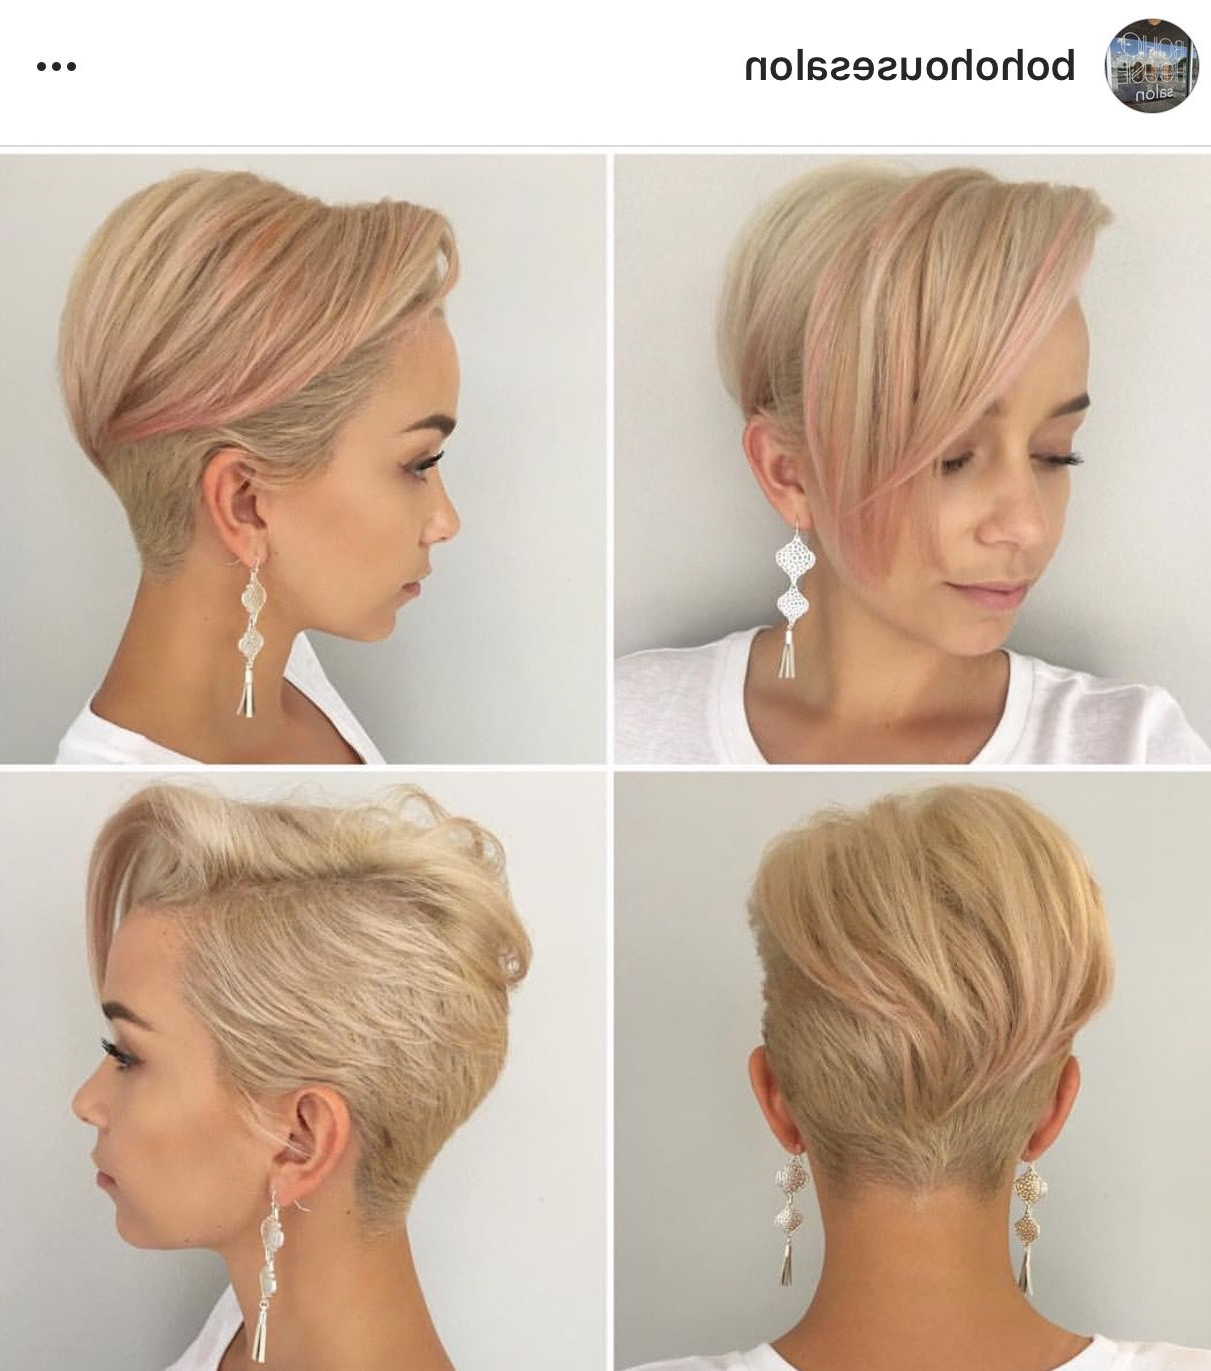 Pinmindy Kayser On The Pixie Files In 2018 | Pinterest | Hair For Disconnected Pixie Hairstyles For Short Hair (View 15 of 20)